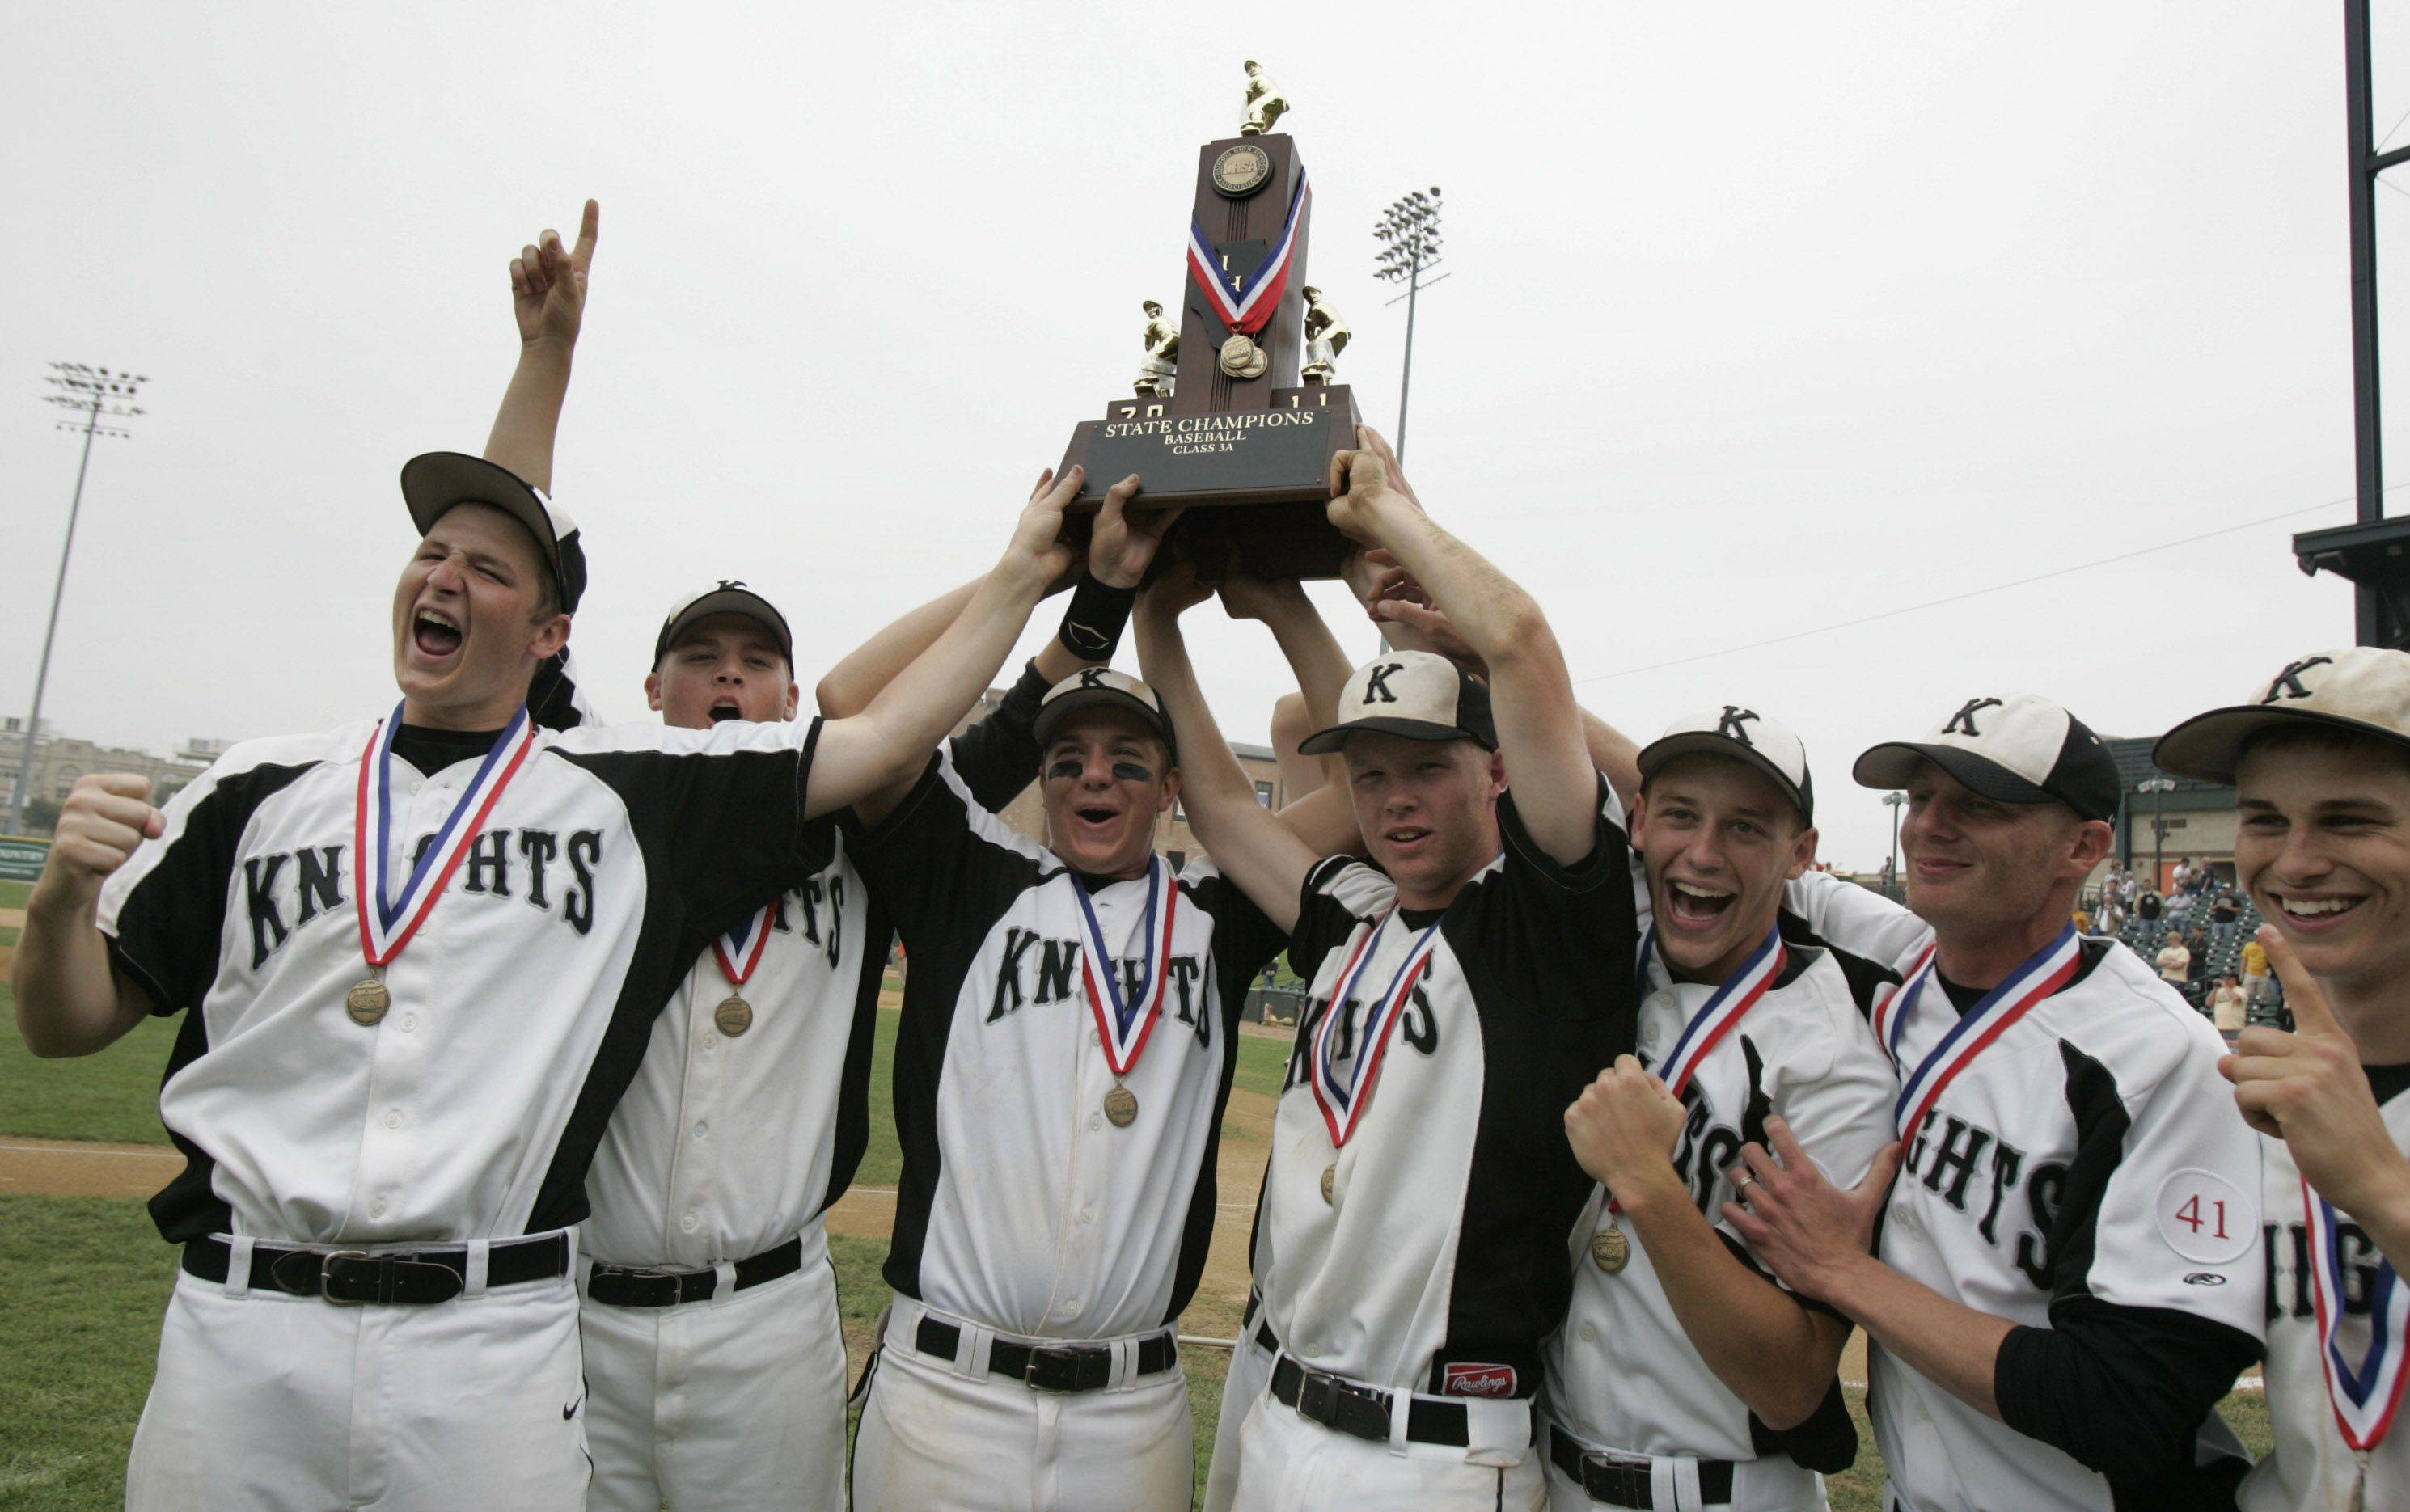 Kaneland baseball players hold up the state trophy after defeating Oak Forest during the boys high school baseball game Saturday in the Class 3A state finals at Silver Cross Field in Joliet. Kaneland defeated Oak Forest 11-3 to win the state championship.